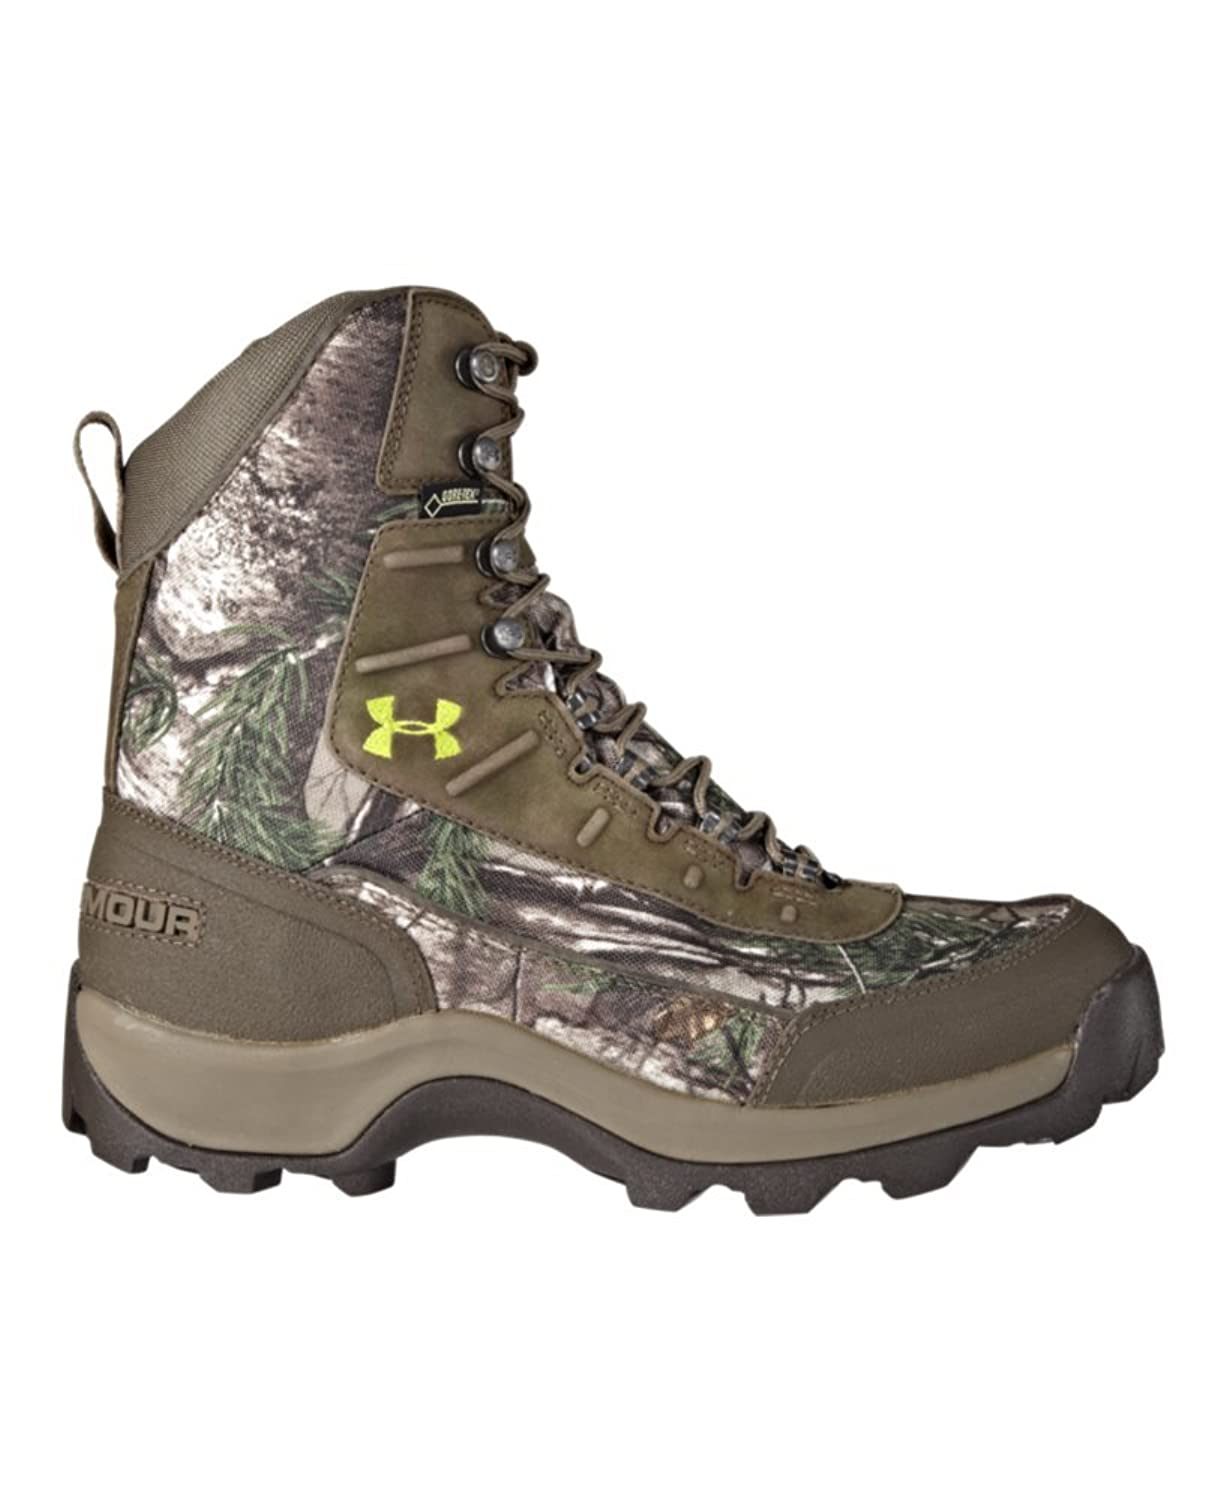 Under Armour Men's UA Brow Tine Hunting Boots – Wide (2E)